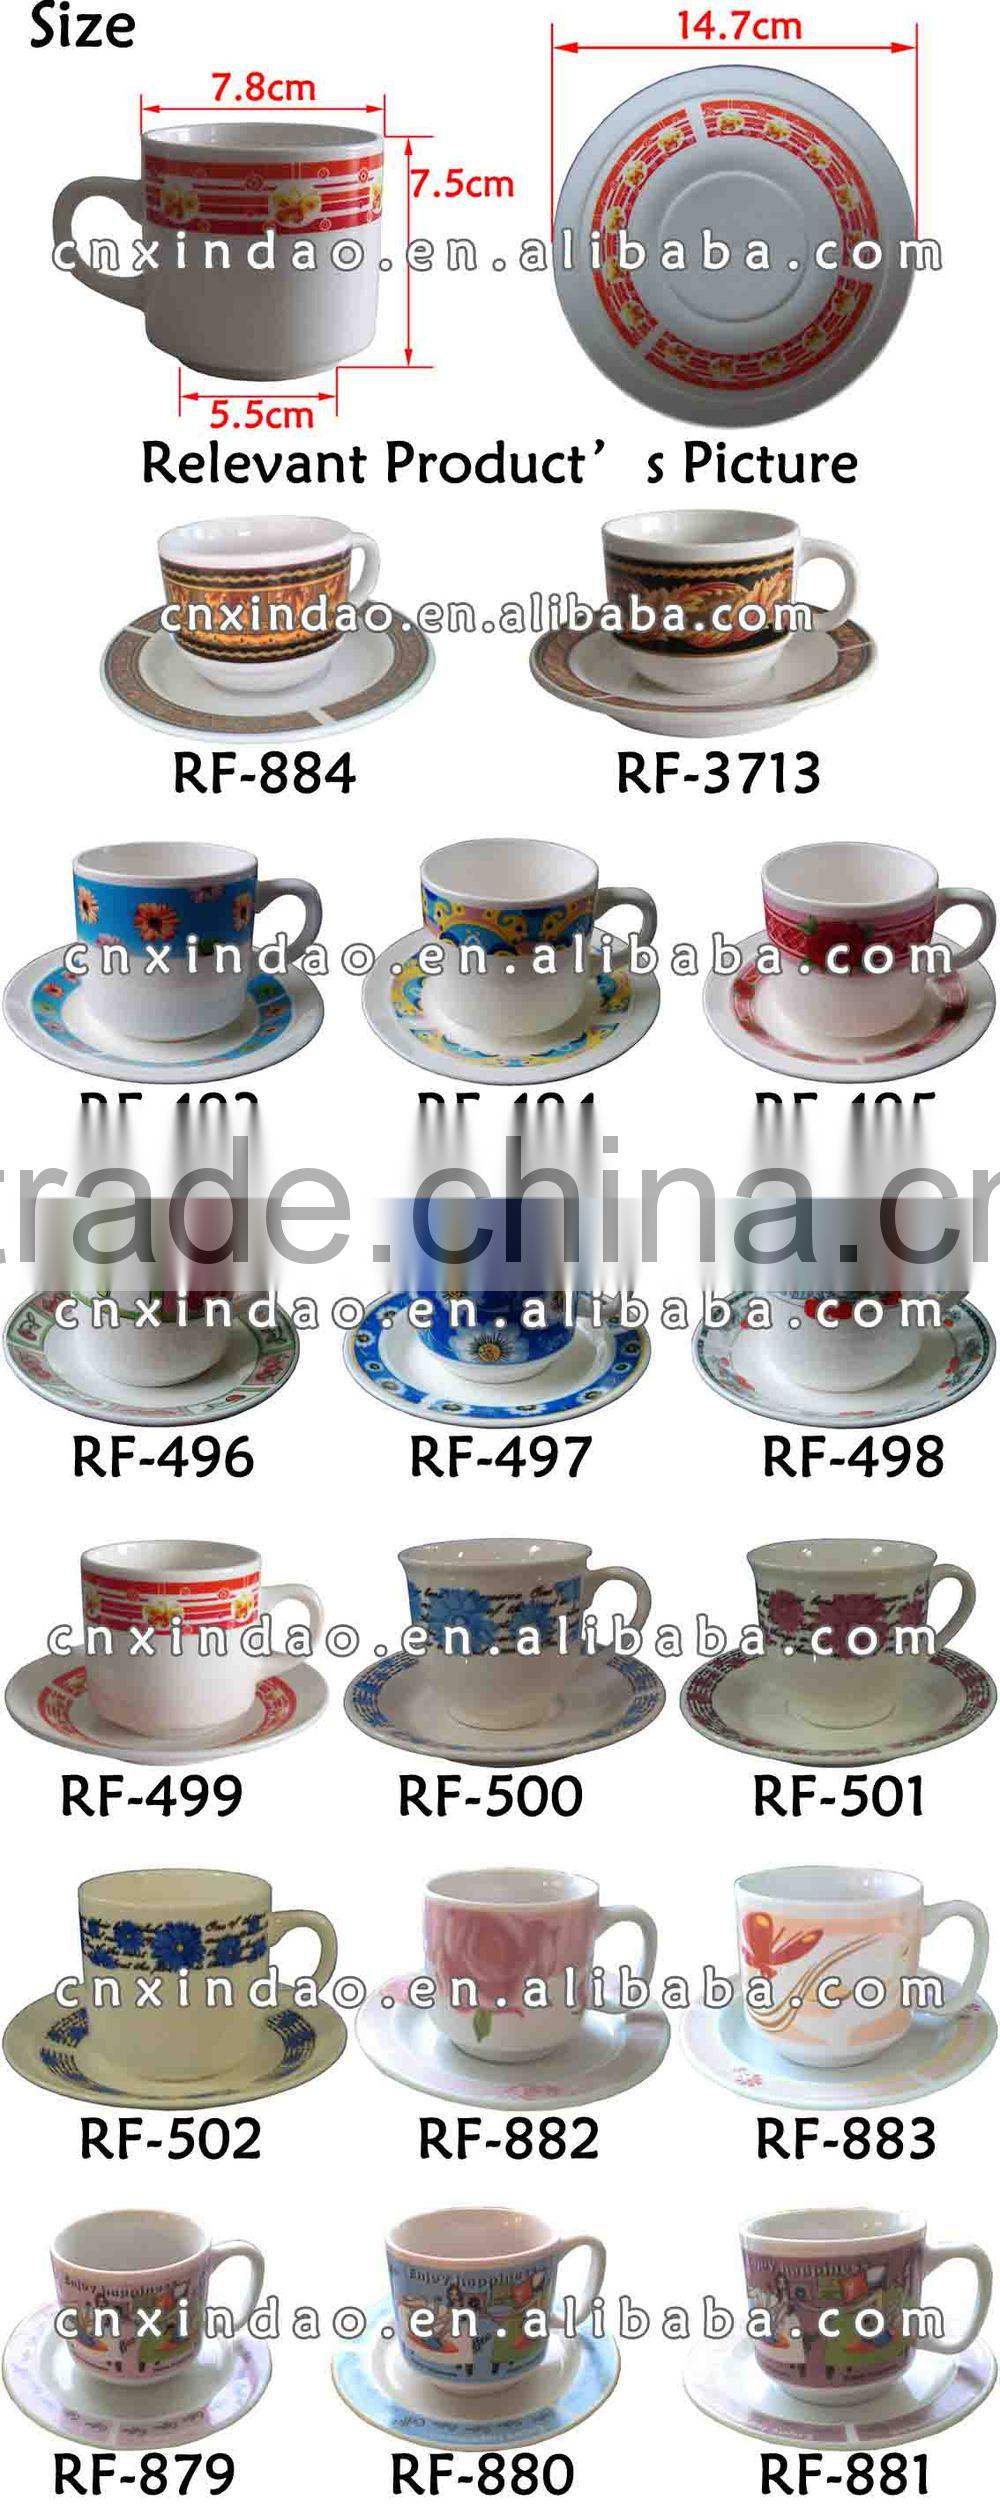 Hot Sale Personalized Ceramic White Coffee Cups Saucers with Good Qualuty & Fanny Design for Promotion